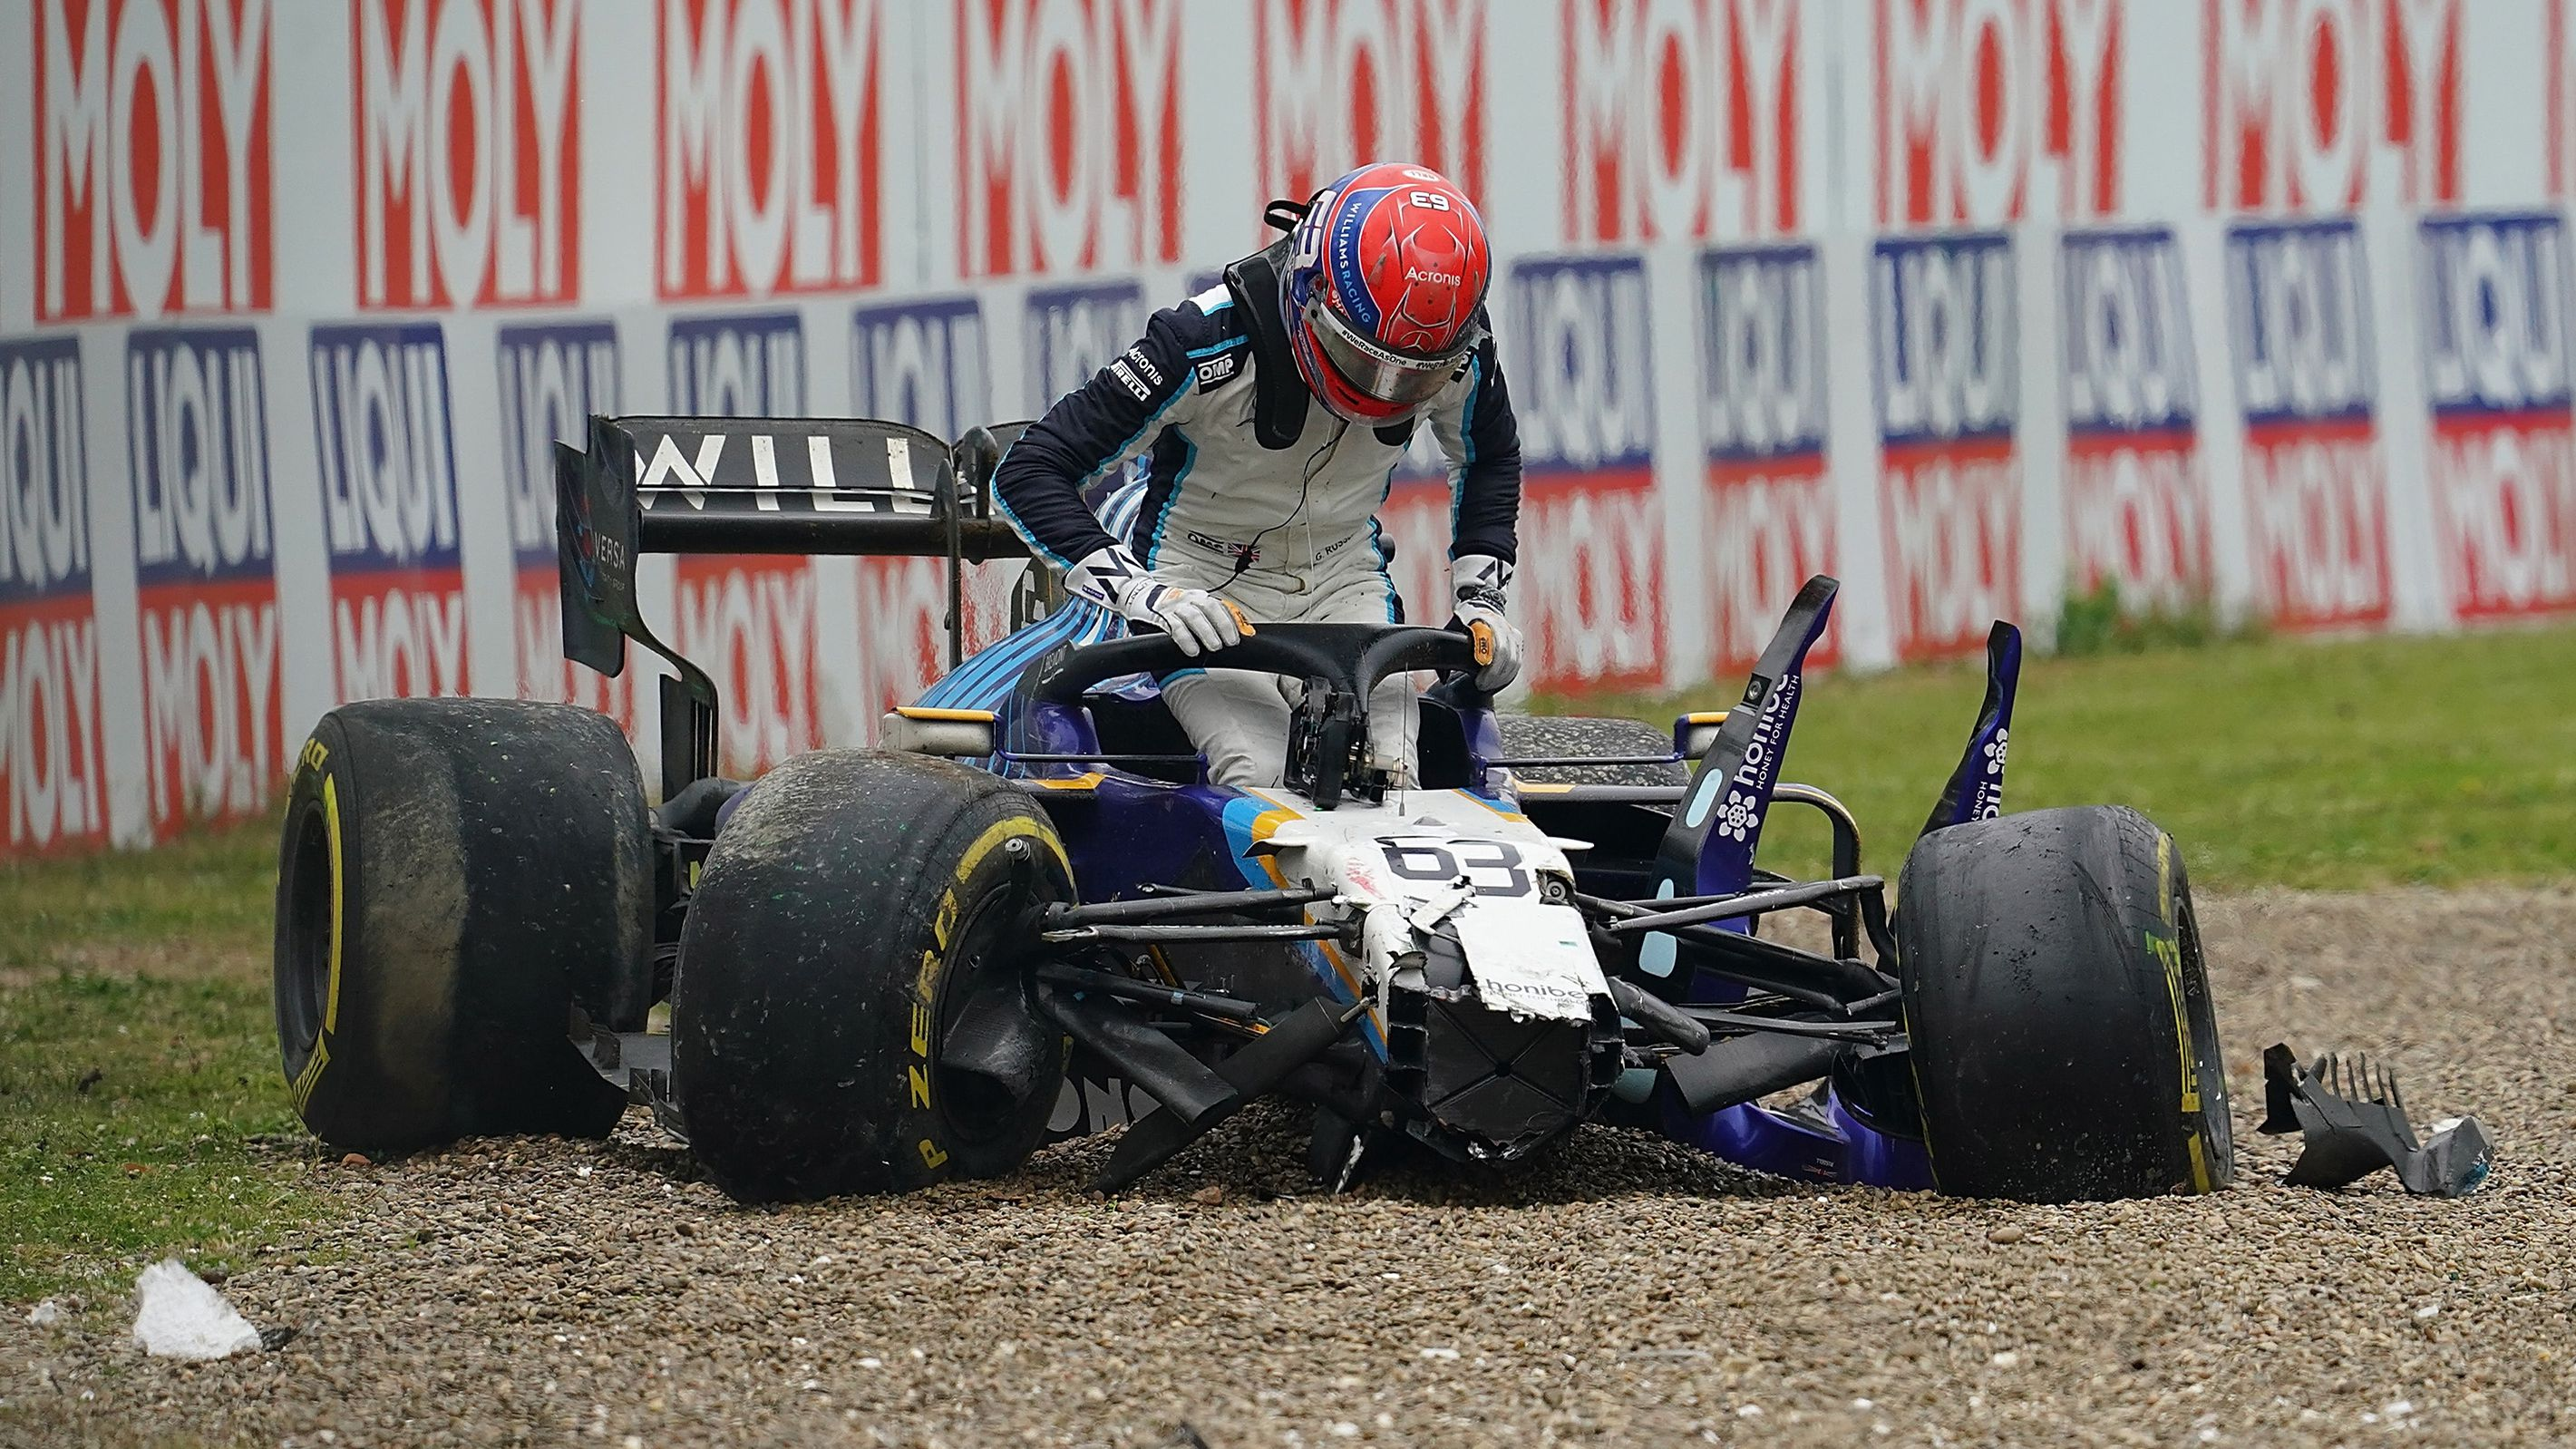 Williams-Mercedes driver George Russell has 'lots to learn' after Italian Grand Prix crash